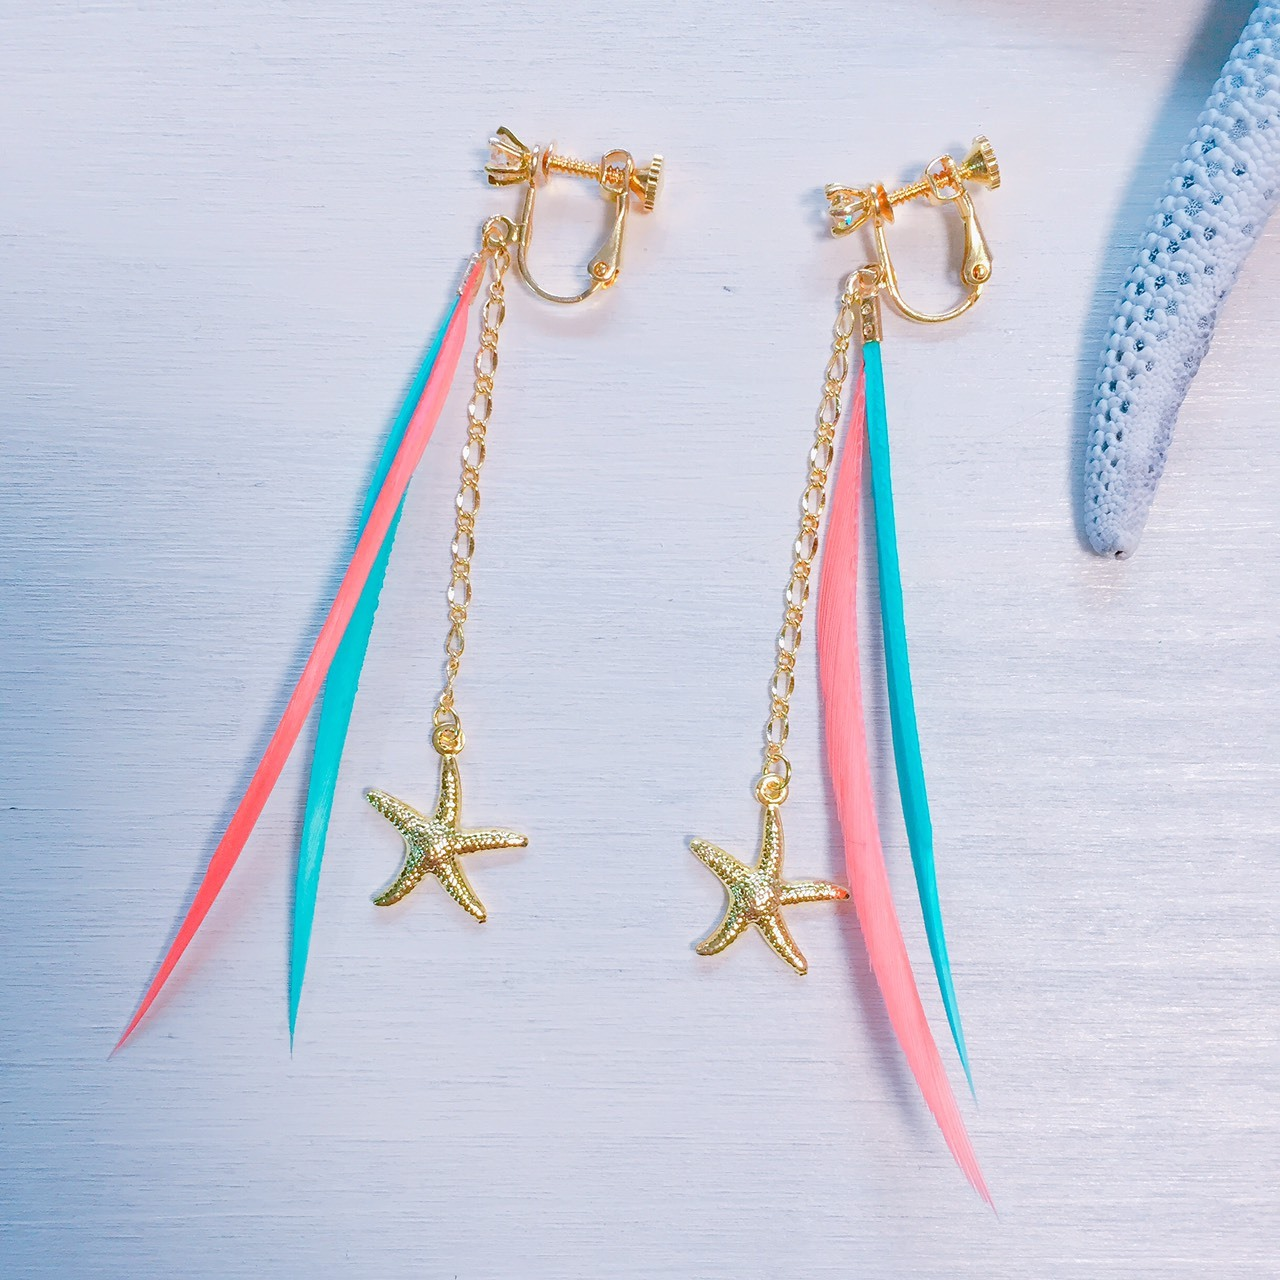 Feather×chain×starfish earring